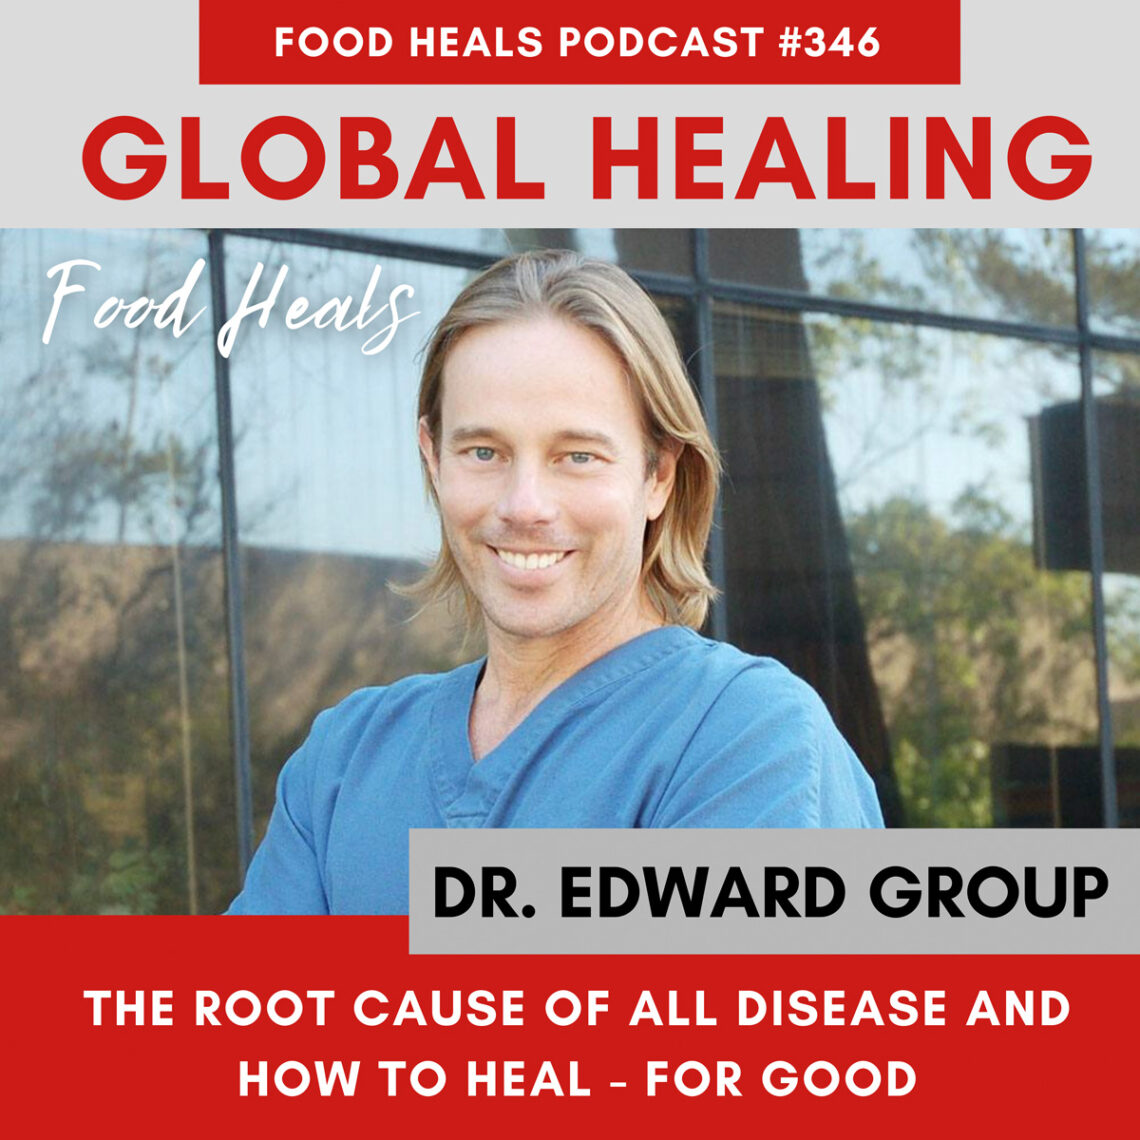 The Root Cause of All Disease and How to Heal - For Good - with Dr. Edward Group